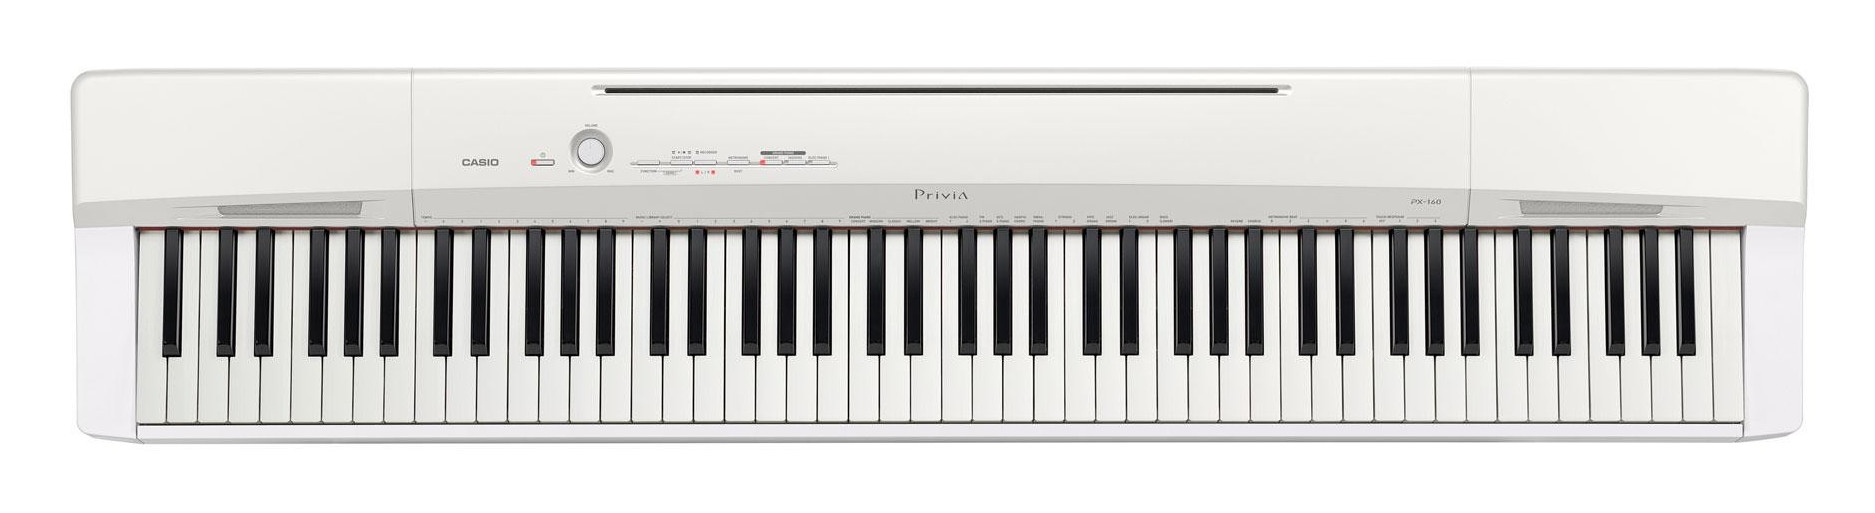 Casio Privia PX-160WE pianoforte digitale BIANCO 88 tasti pesati